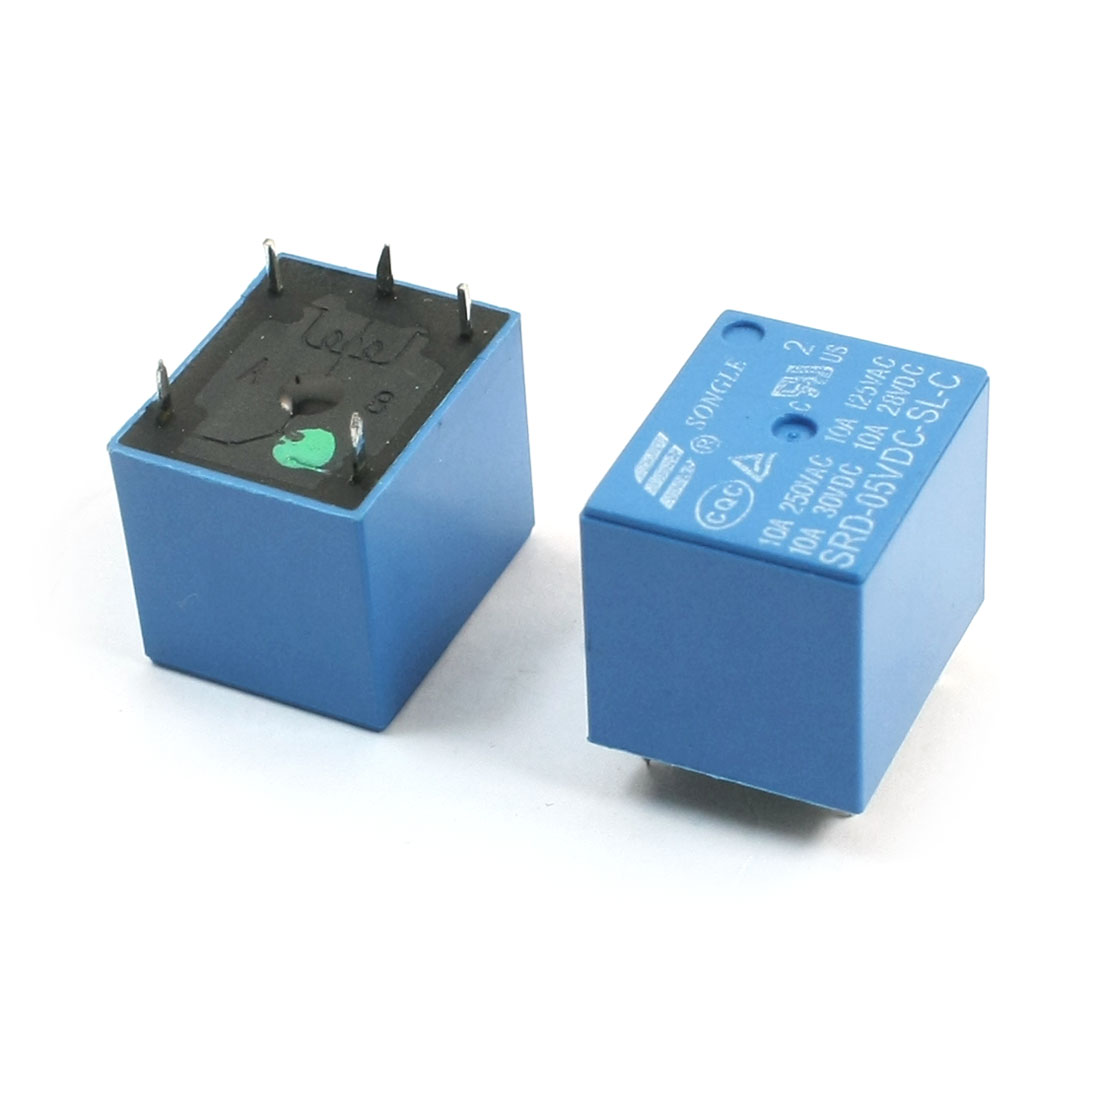 SRD-05VDC-SL-C DC5V SPDT 1NO 1NC 5 Pins PCB Type Plug in Mount General Purpose Electromagnetic Coil Power Relay Blue 2Pcs